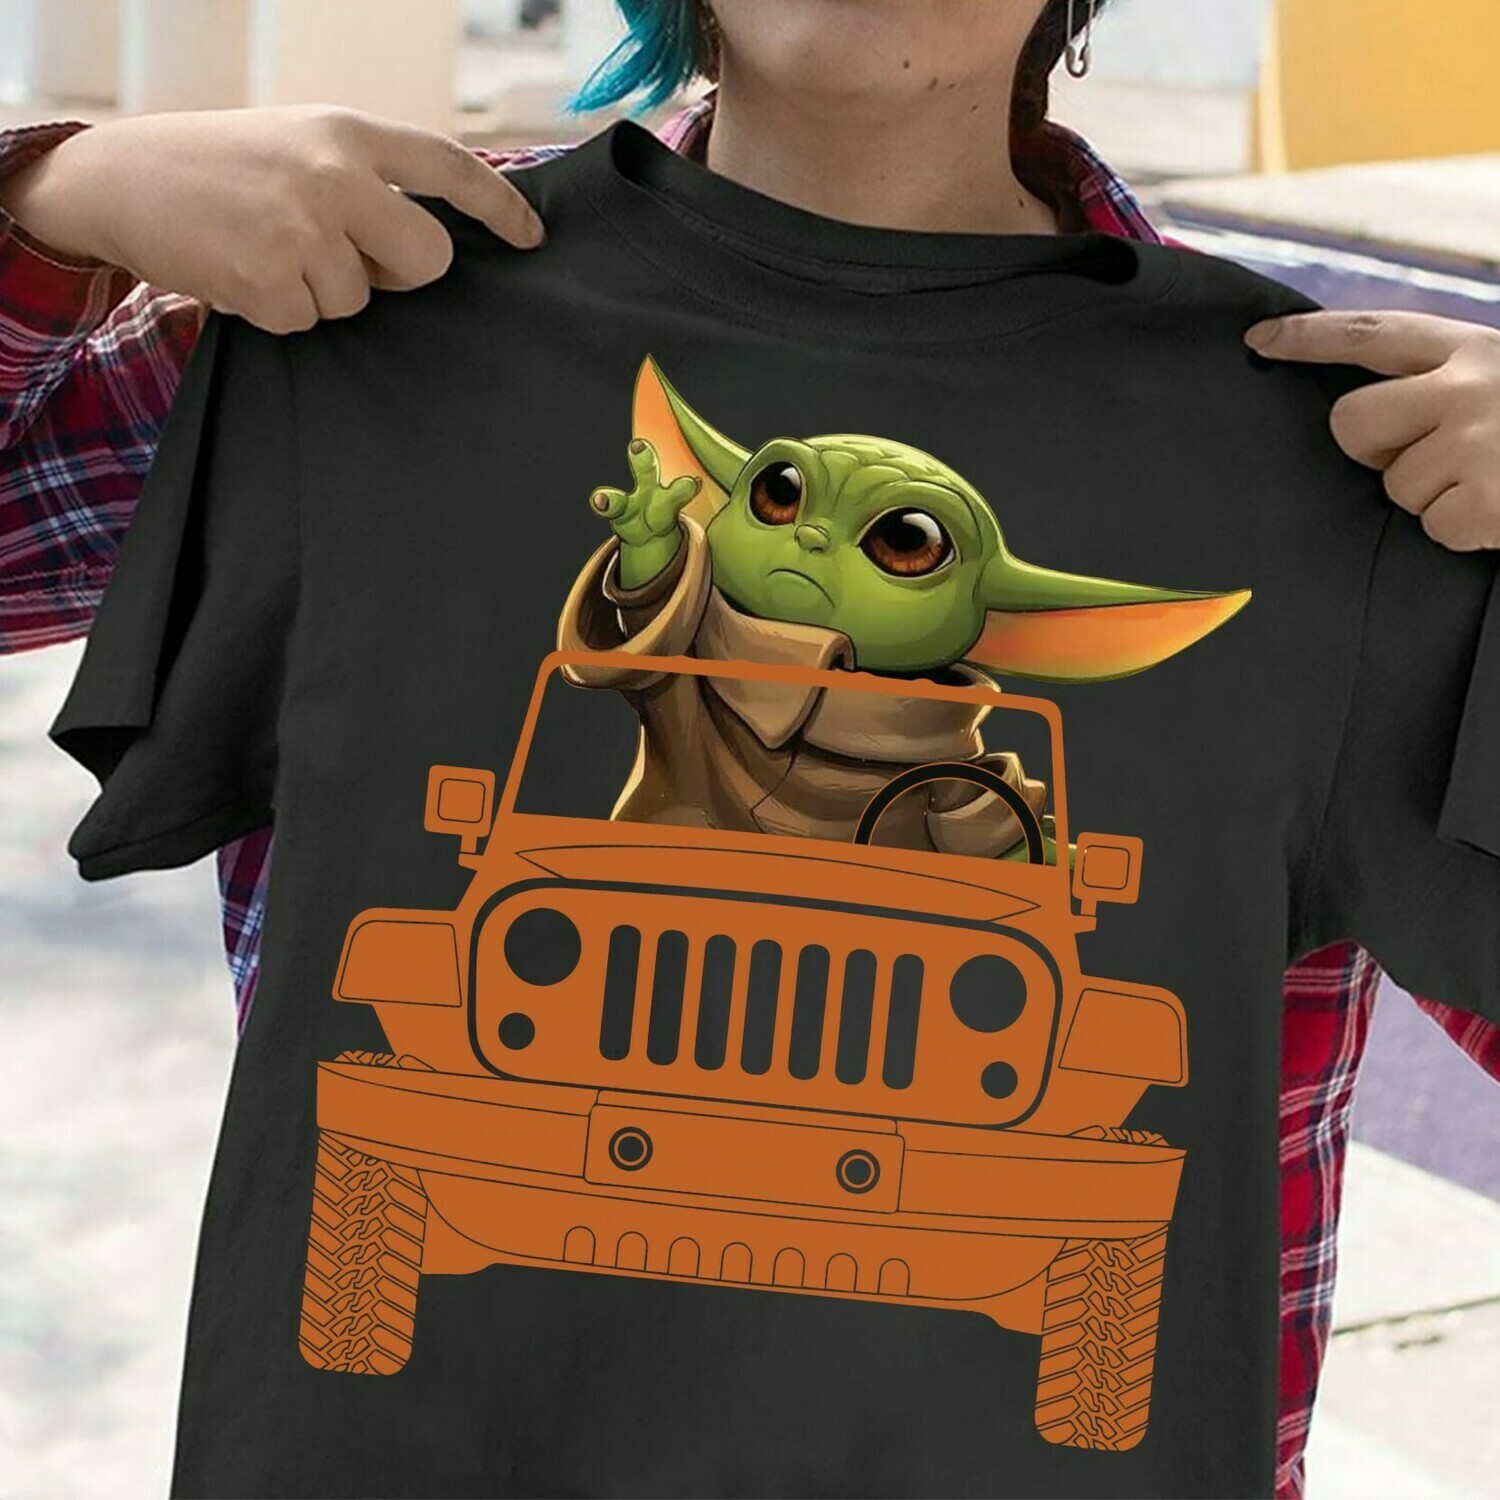 Baby Yoda Driving Jeep Car The Mandalorian with death Star Wars Movie The Rise of Skywalker Galaxy fan Gift  T-Shirt Hoodie Sweatshirt Sweater Tee Kids Youth Gifts Jolly Family Gifts